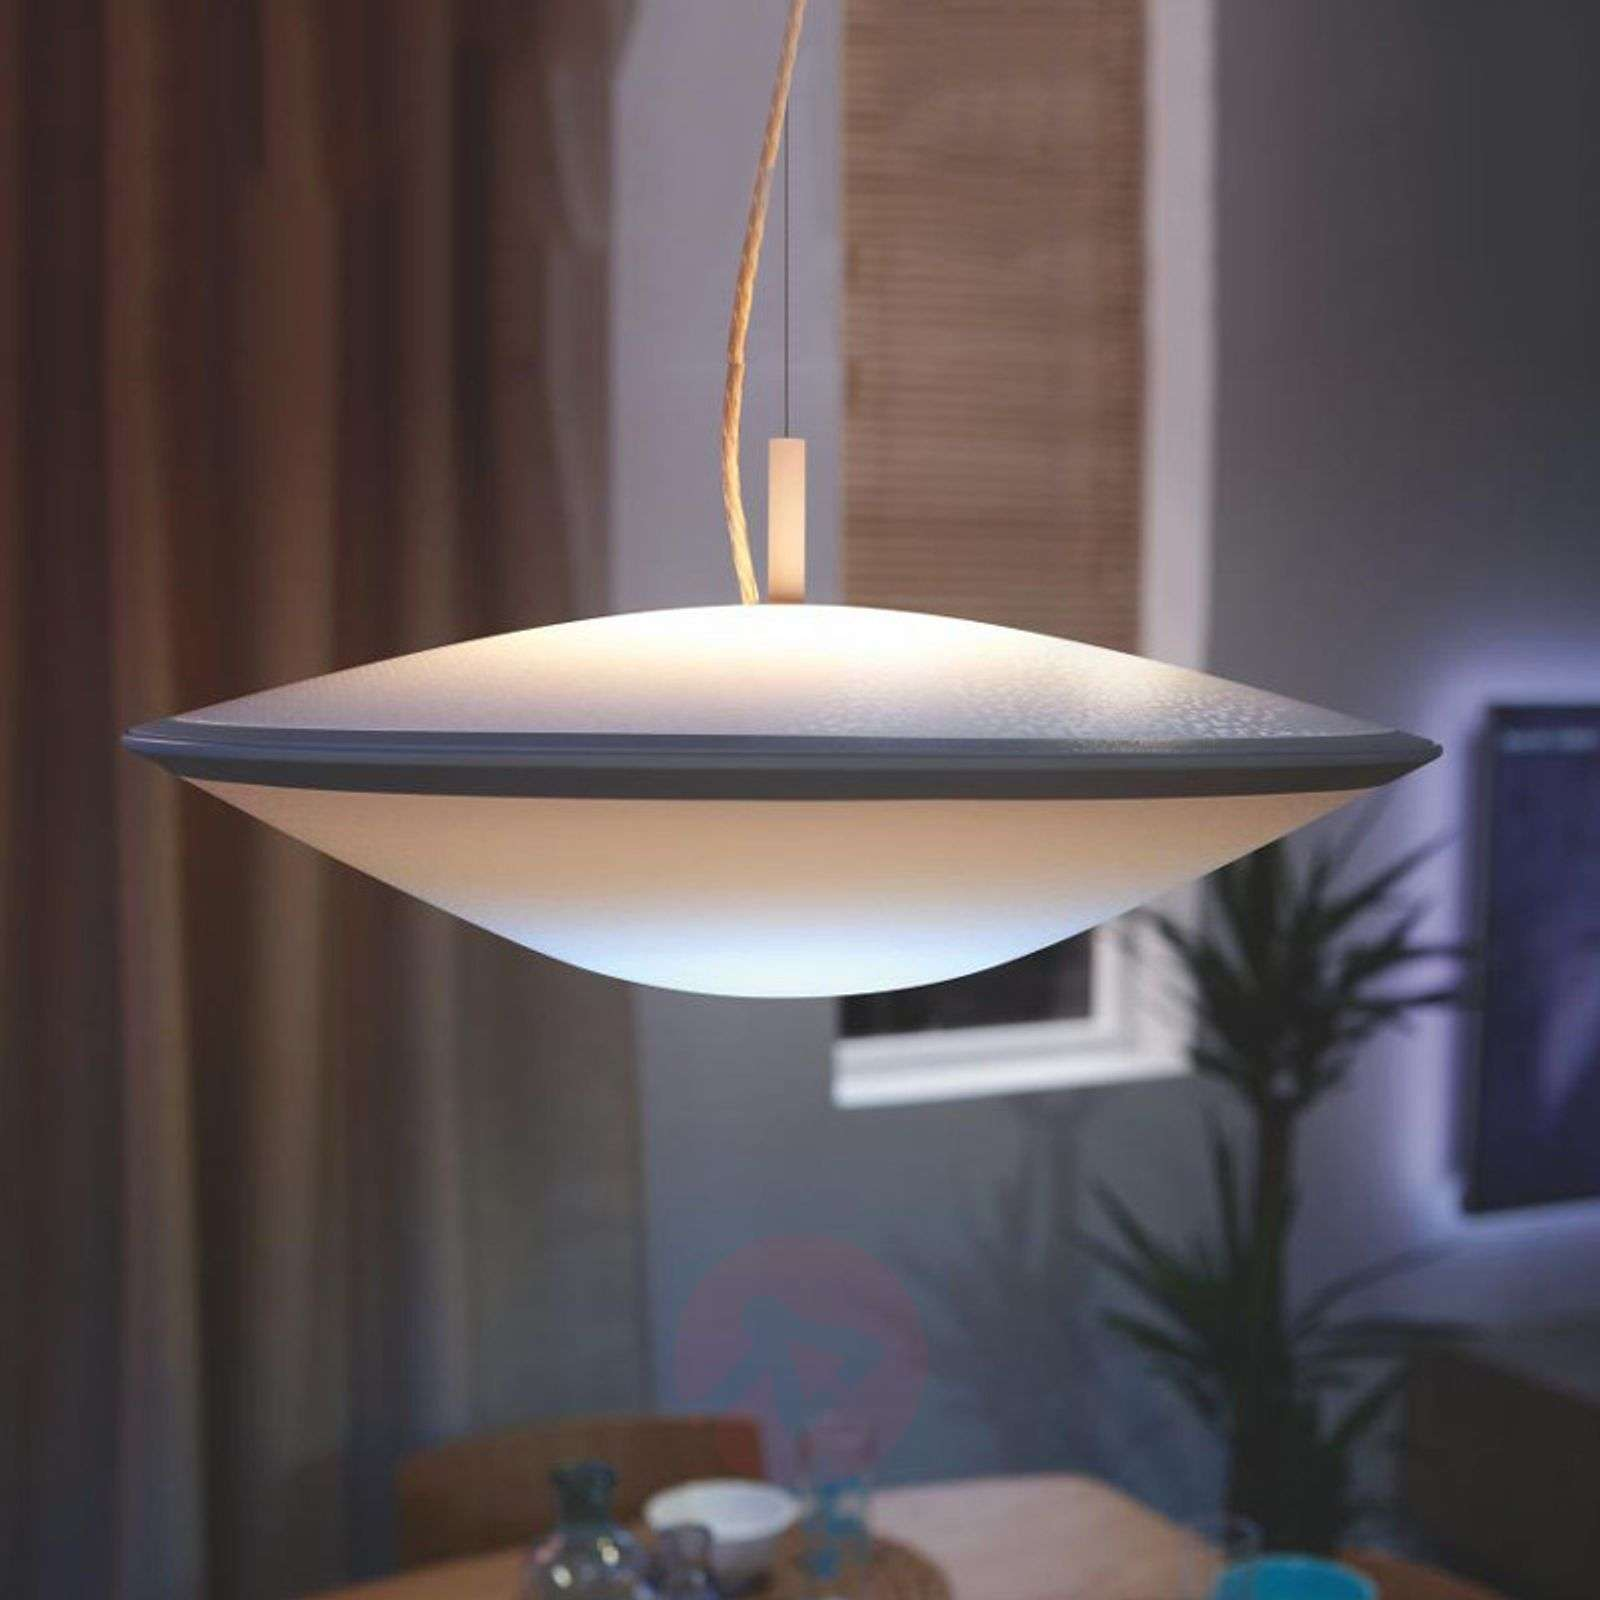 philips hue phoenix pendant light lights ie